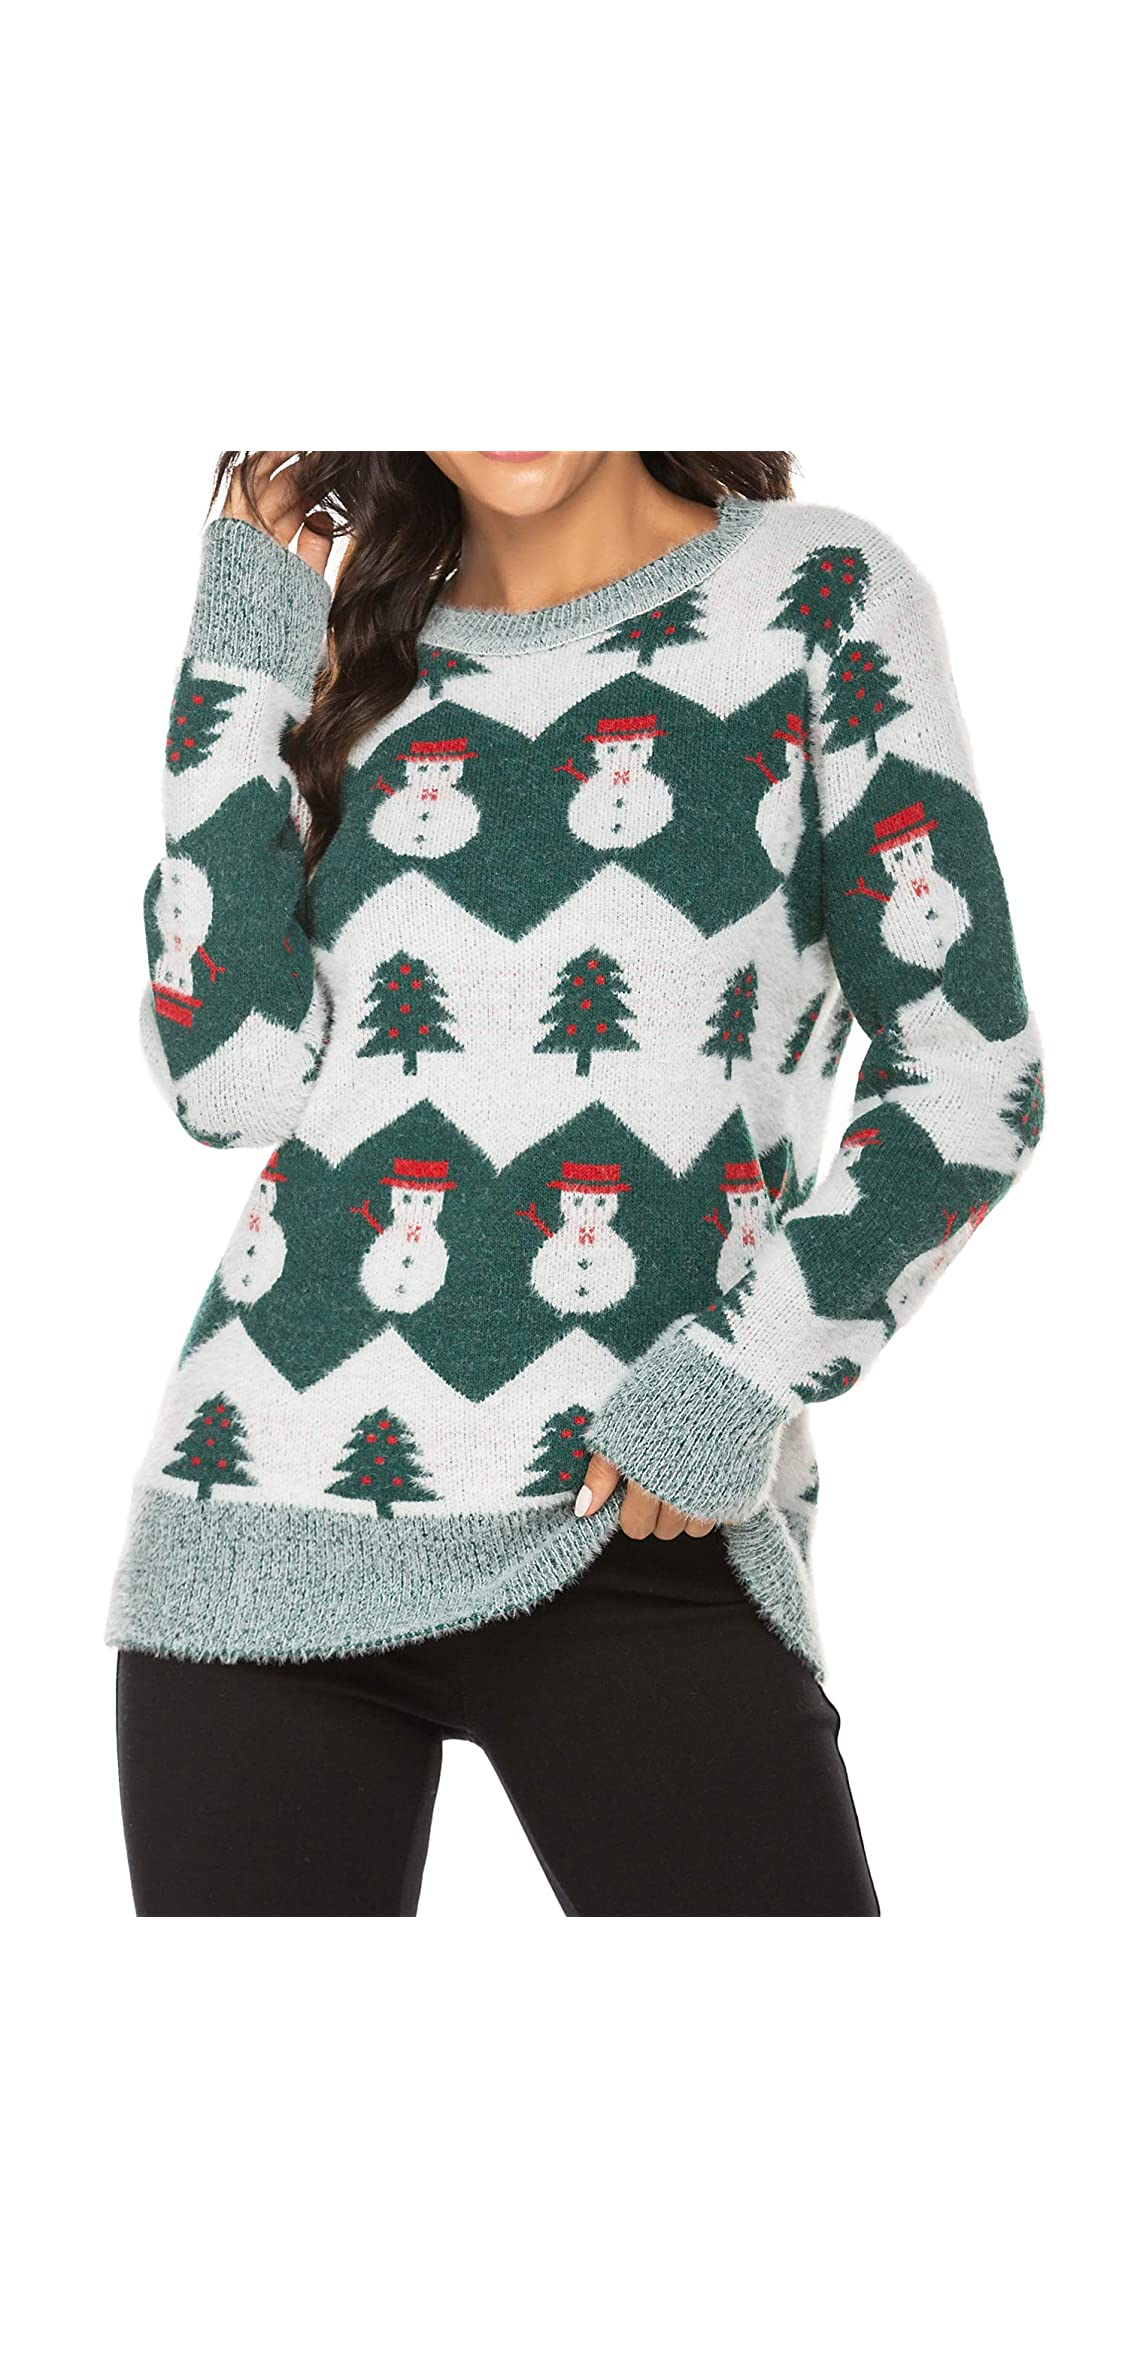 Women's Christmas Knitted Sweater Snowman Christmas